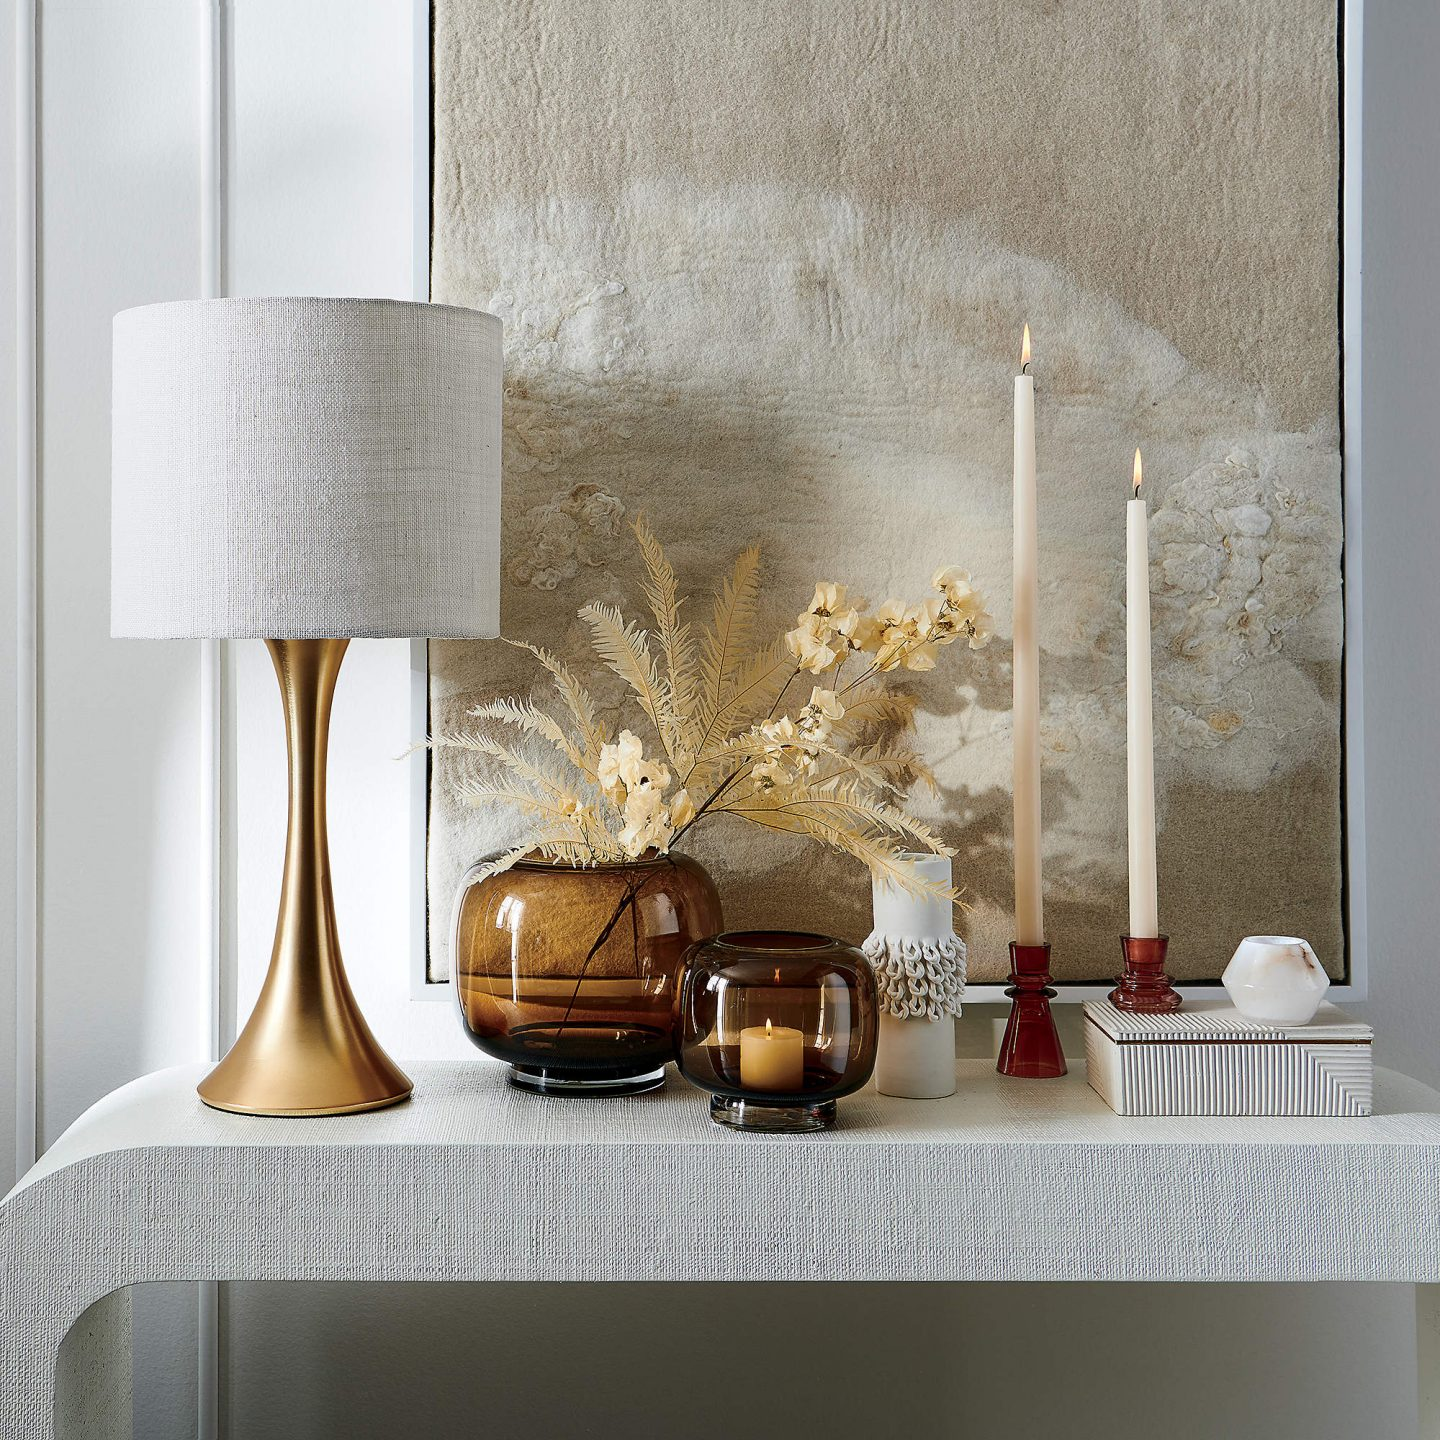 Best affordable stores like Zara home: CB2